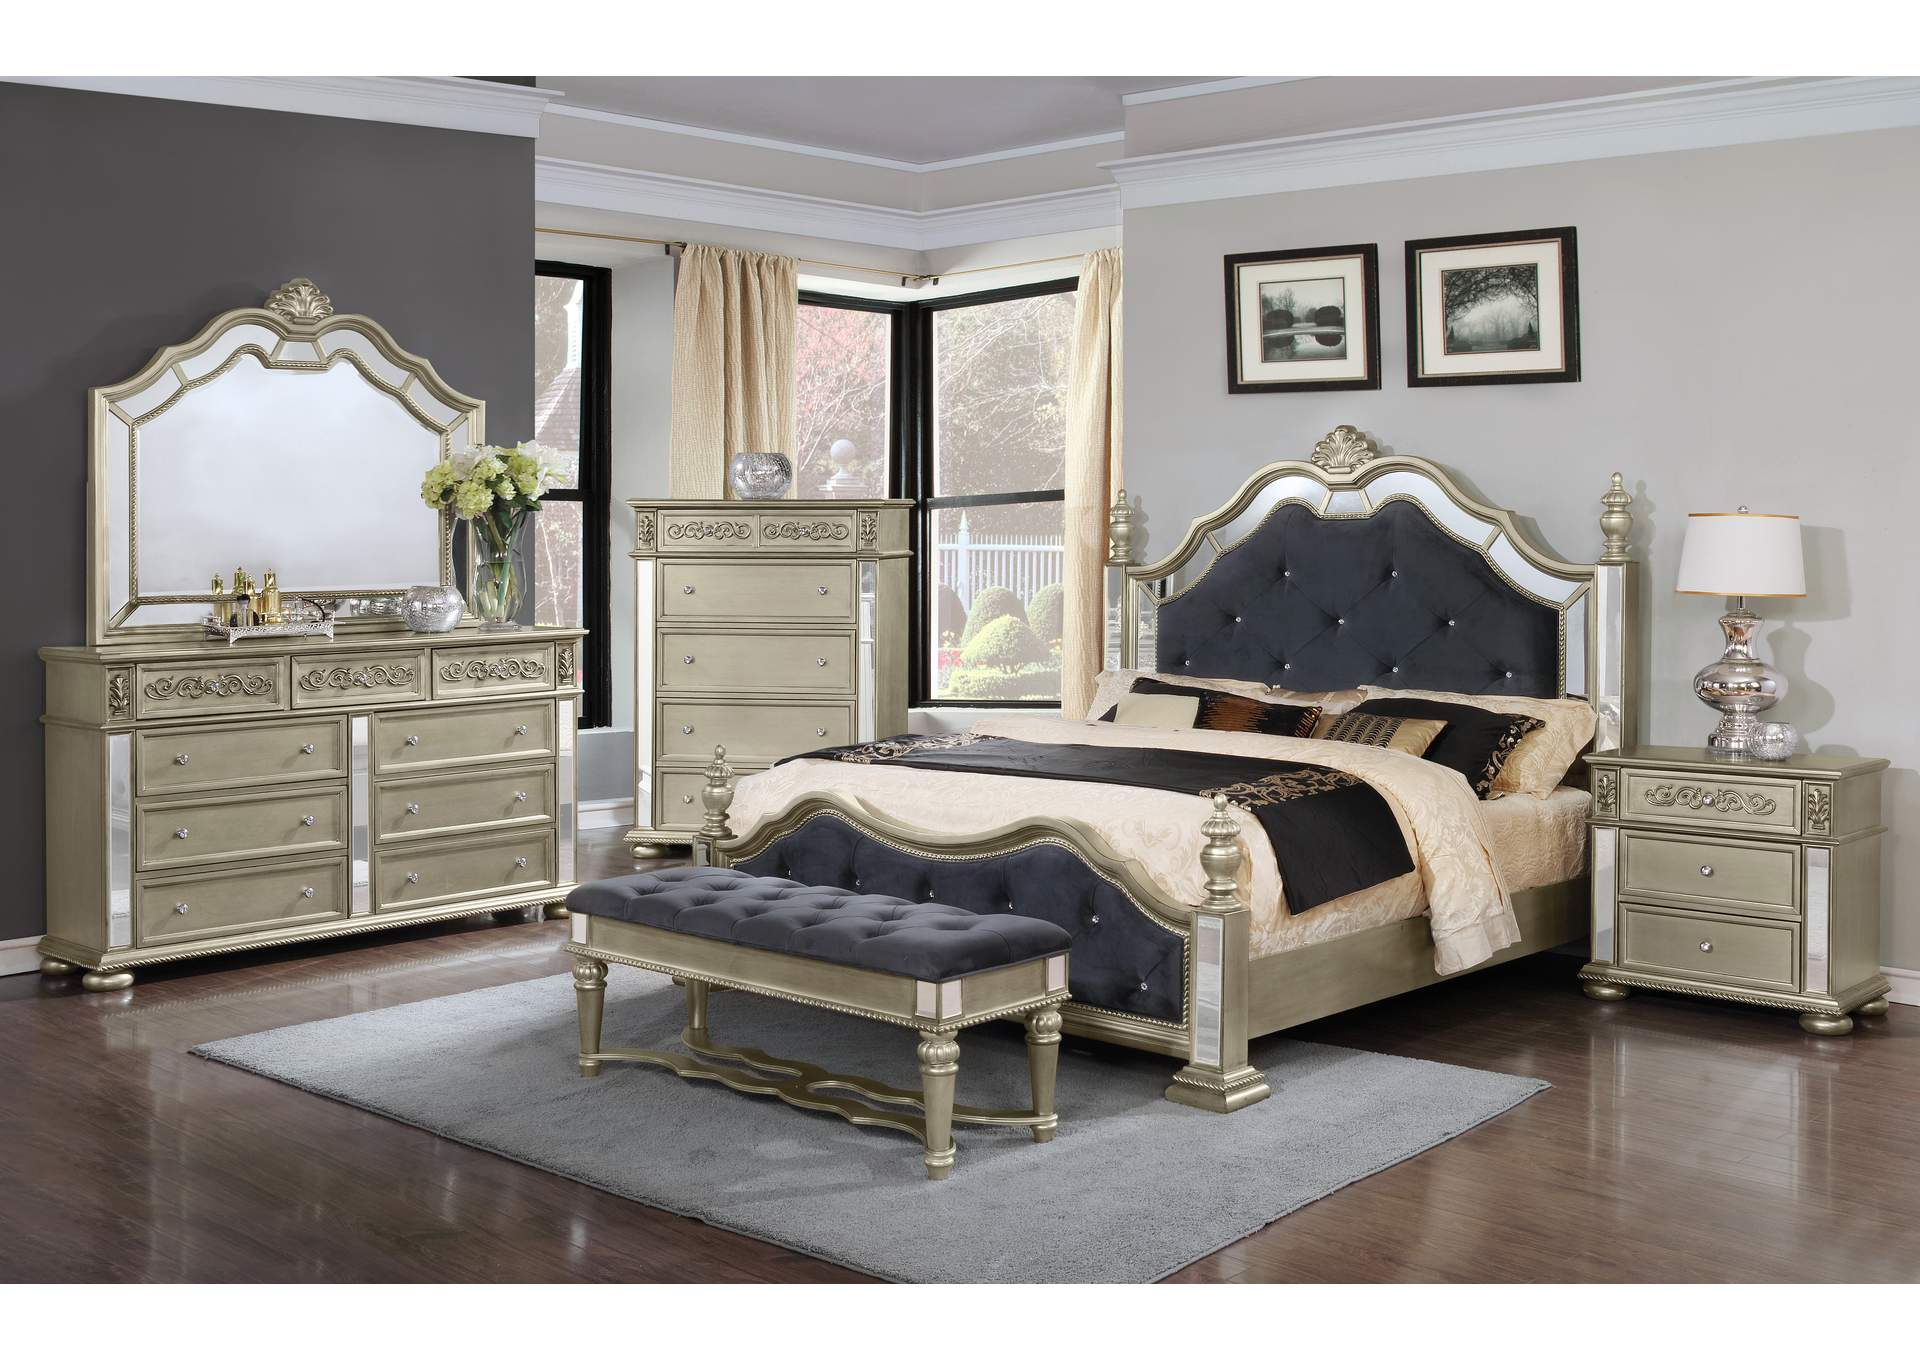 Silver Queen Poster Bed,Global Trading